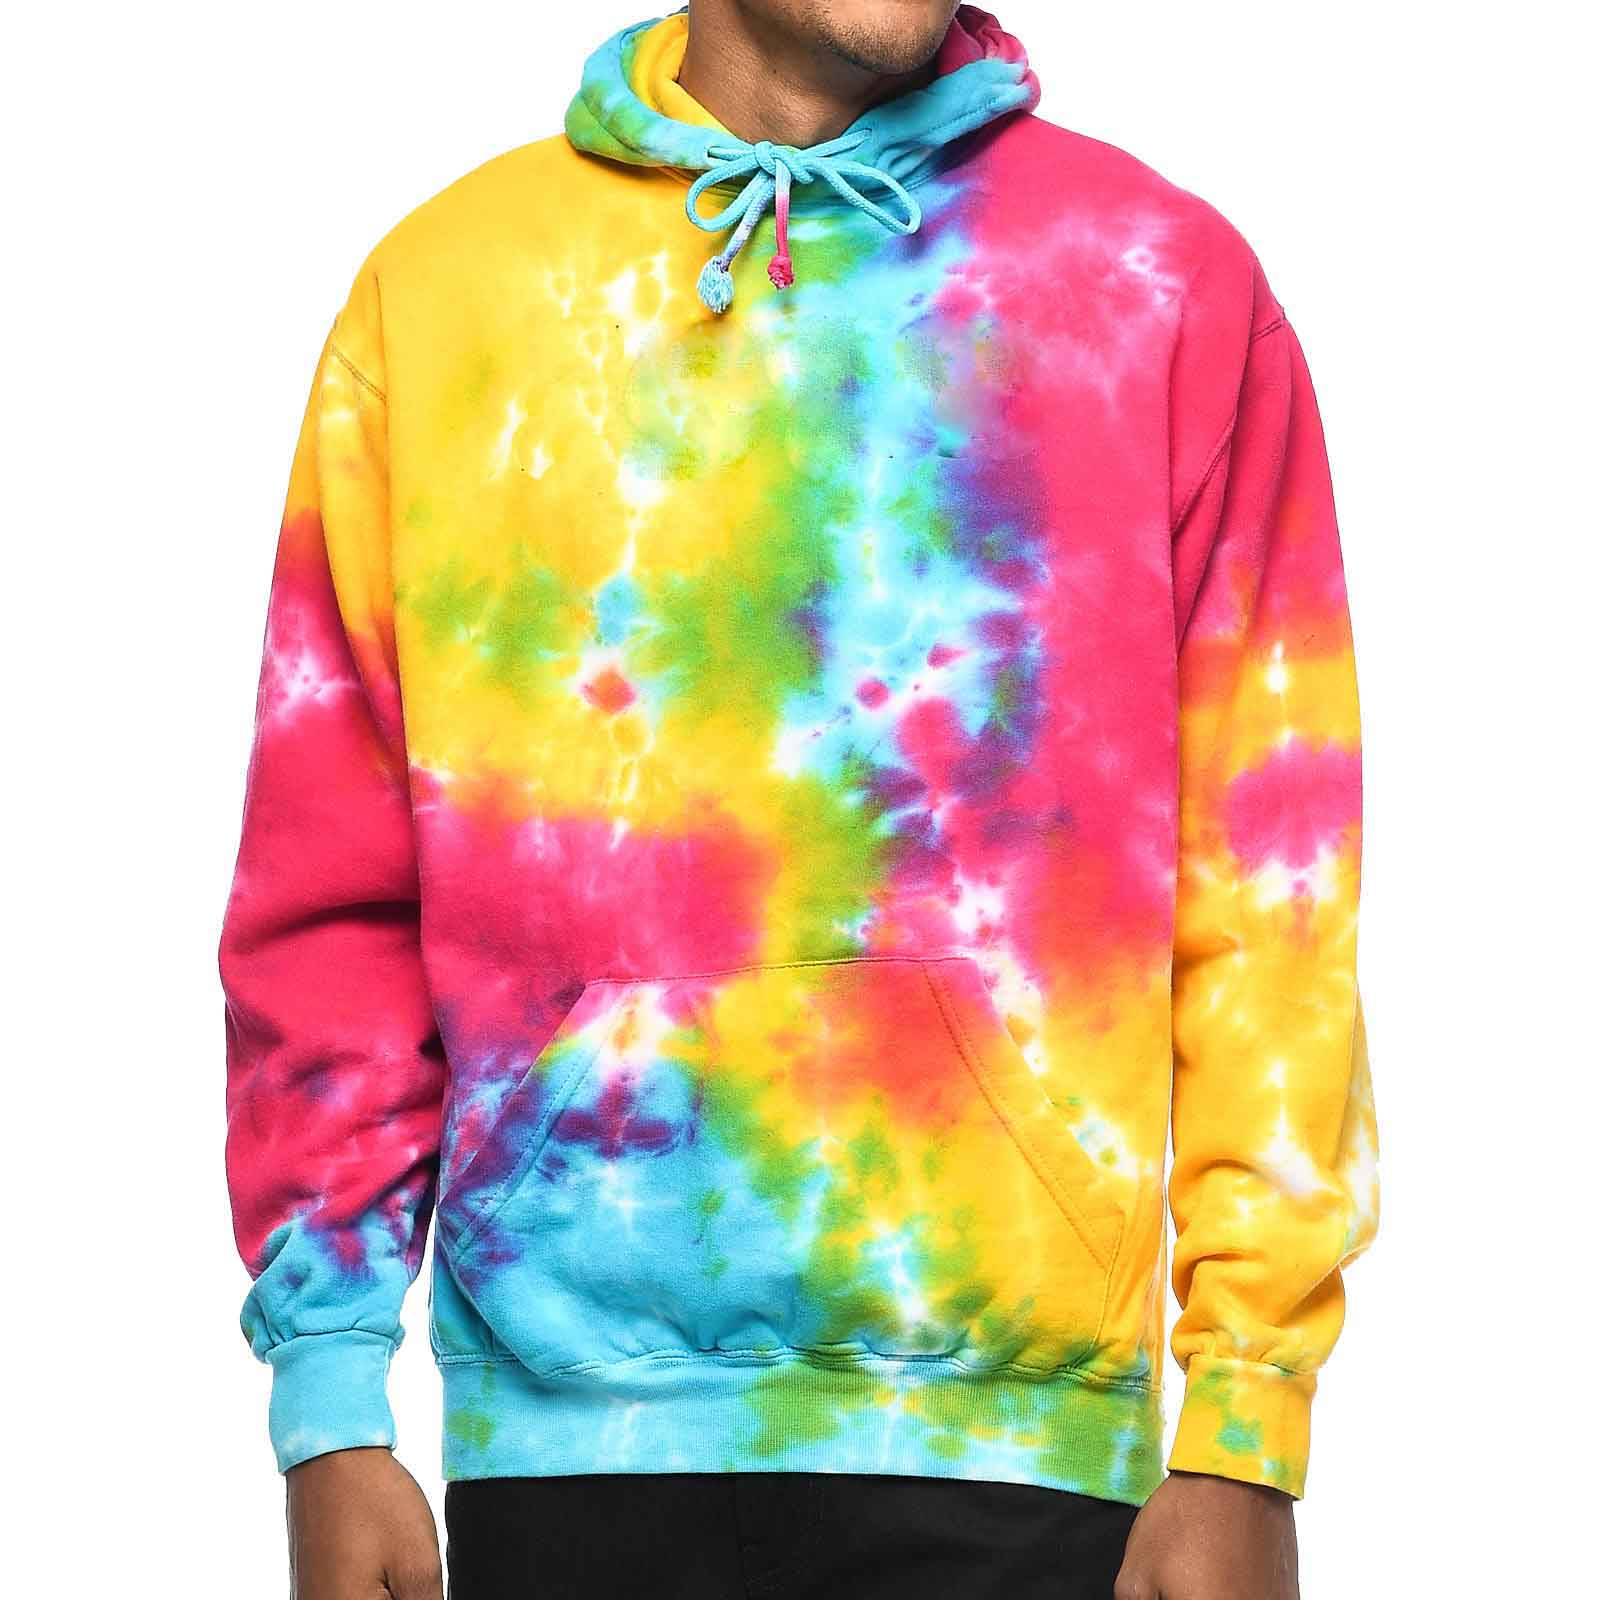 Custom Cut and Sew Hoodie Manufacturers and Contractors